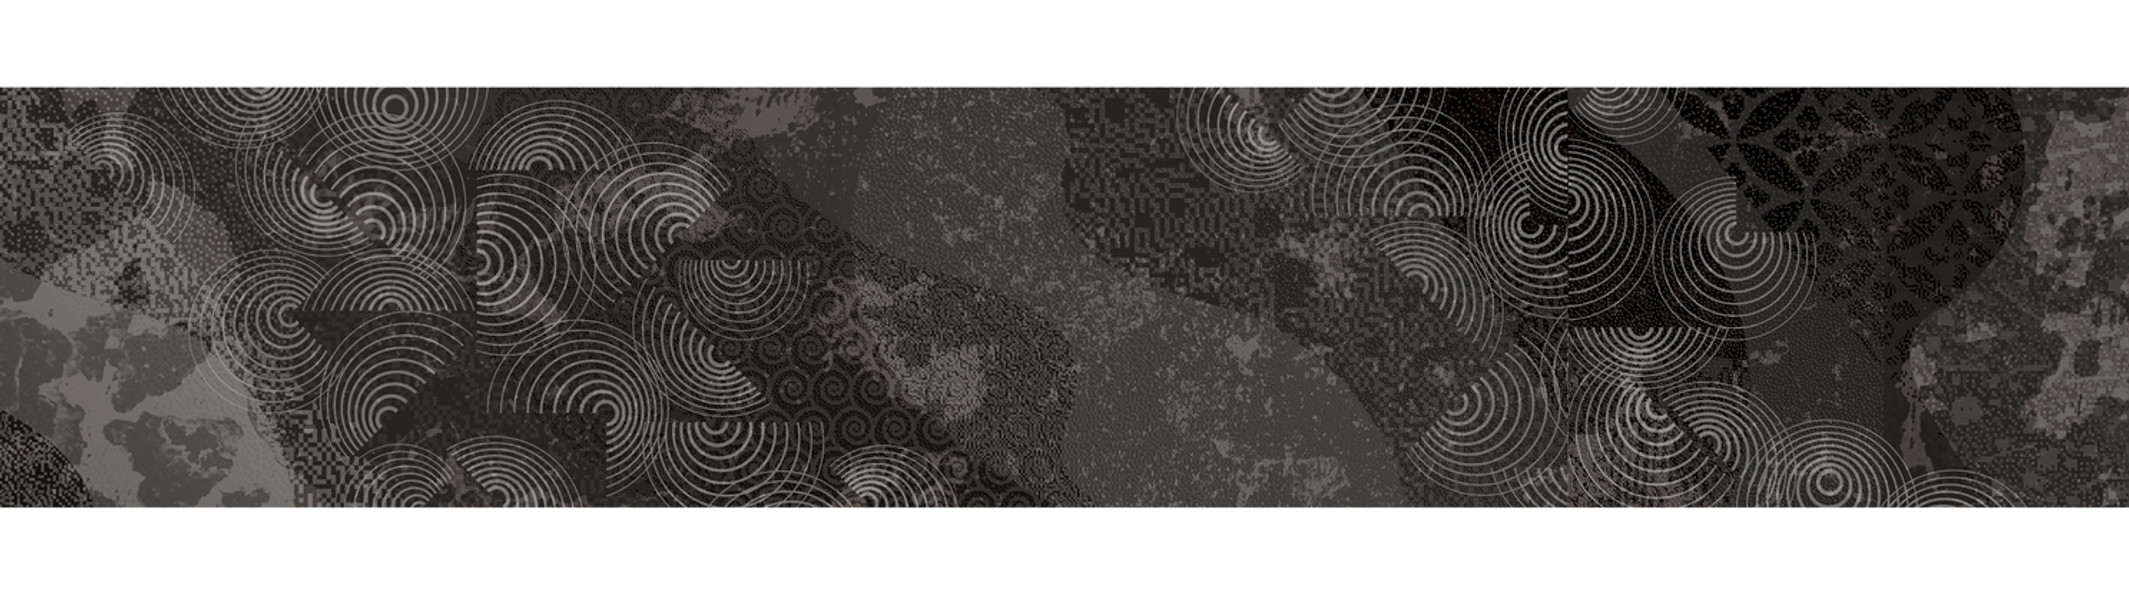 Mural Graphic - Wall Texture